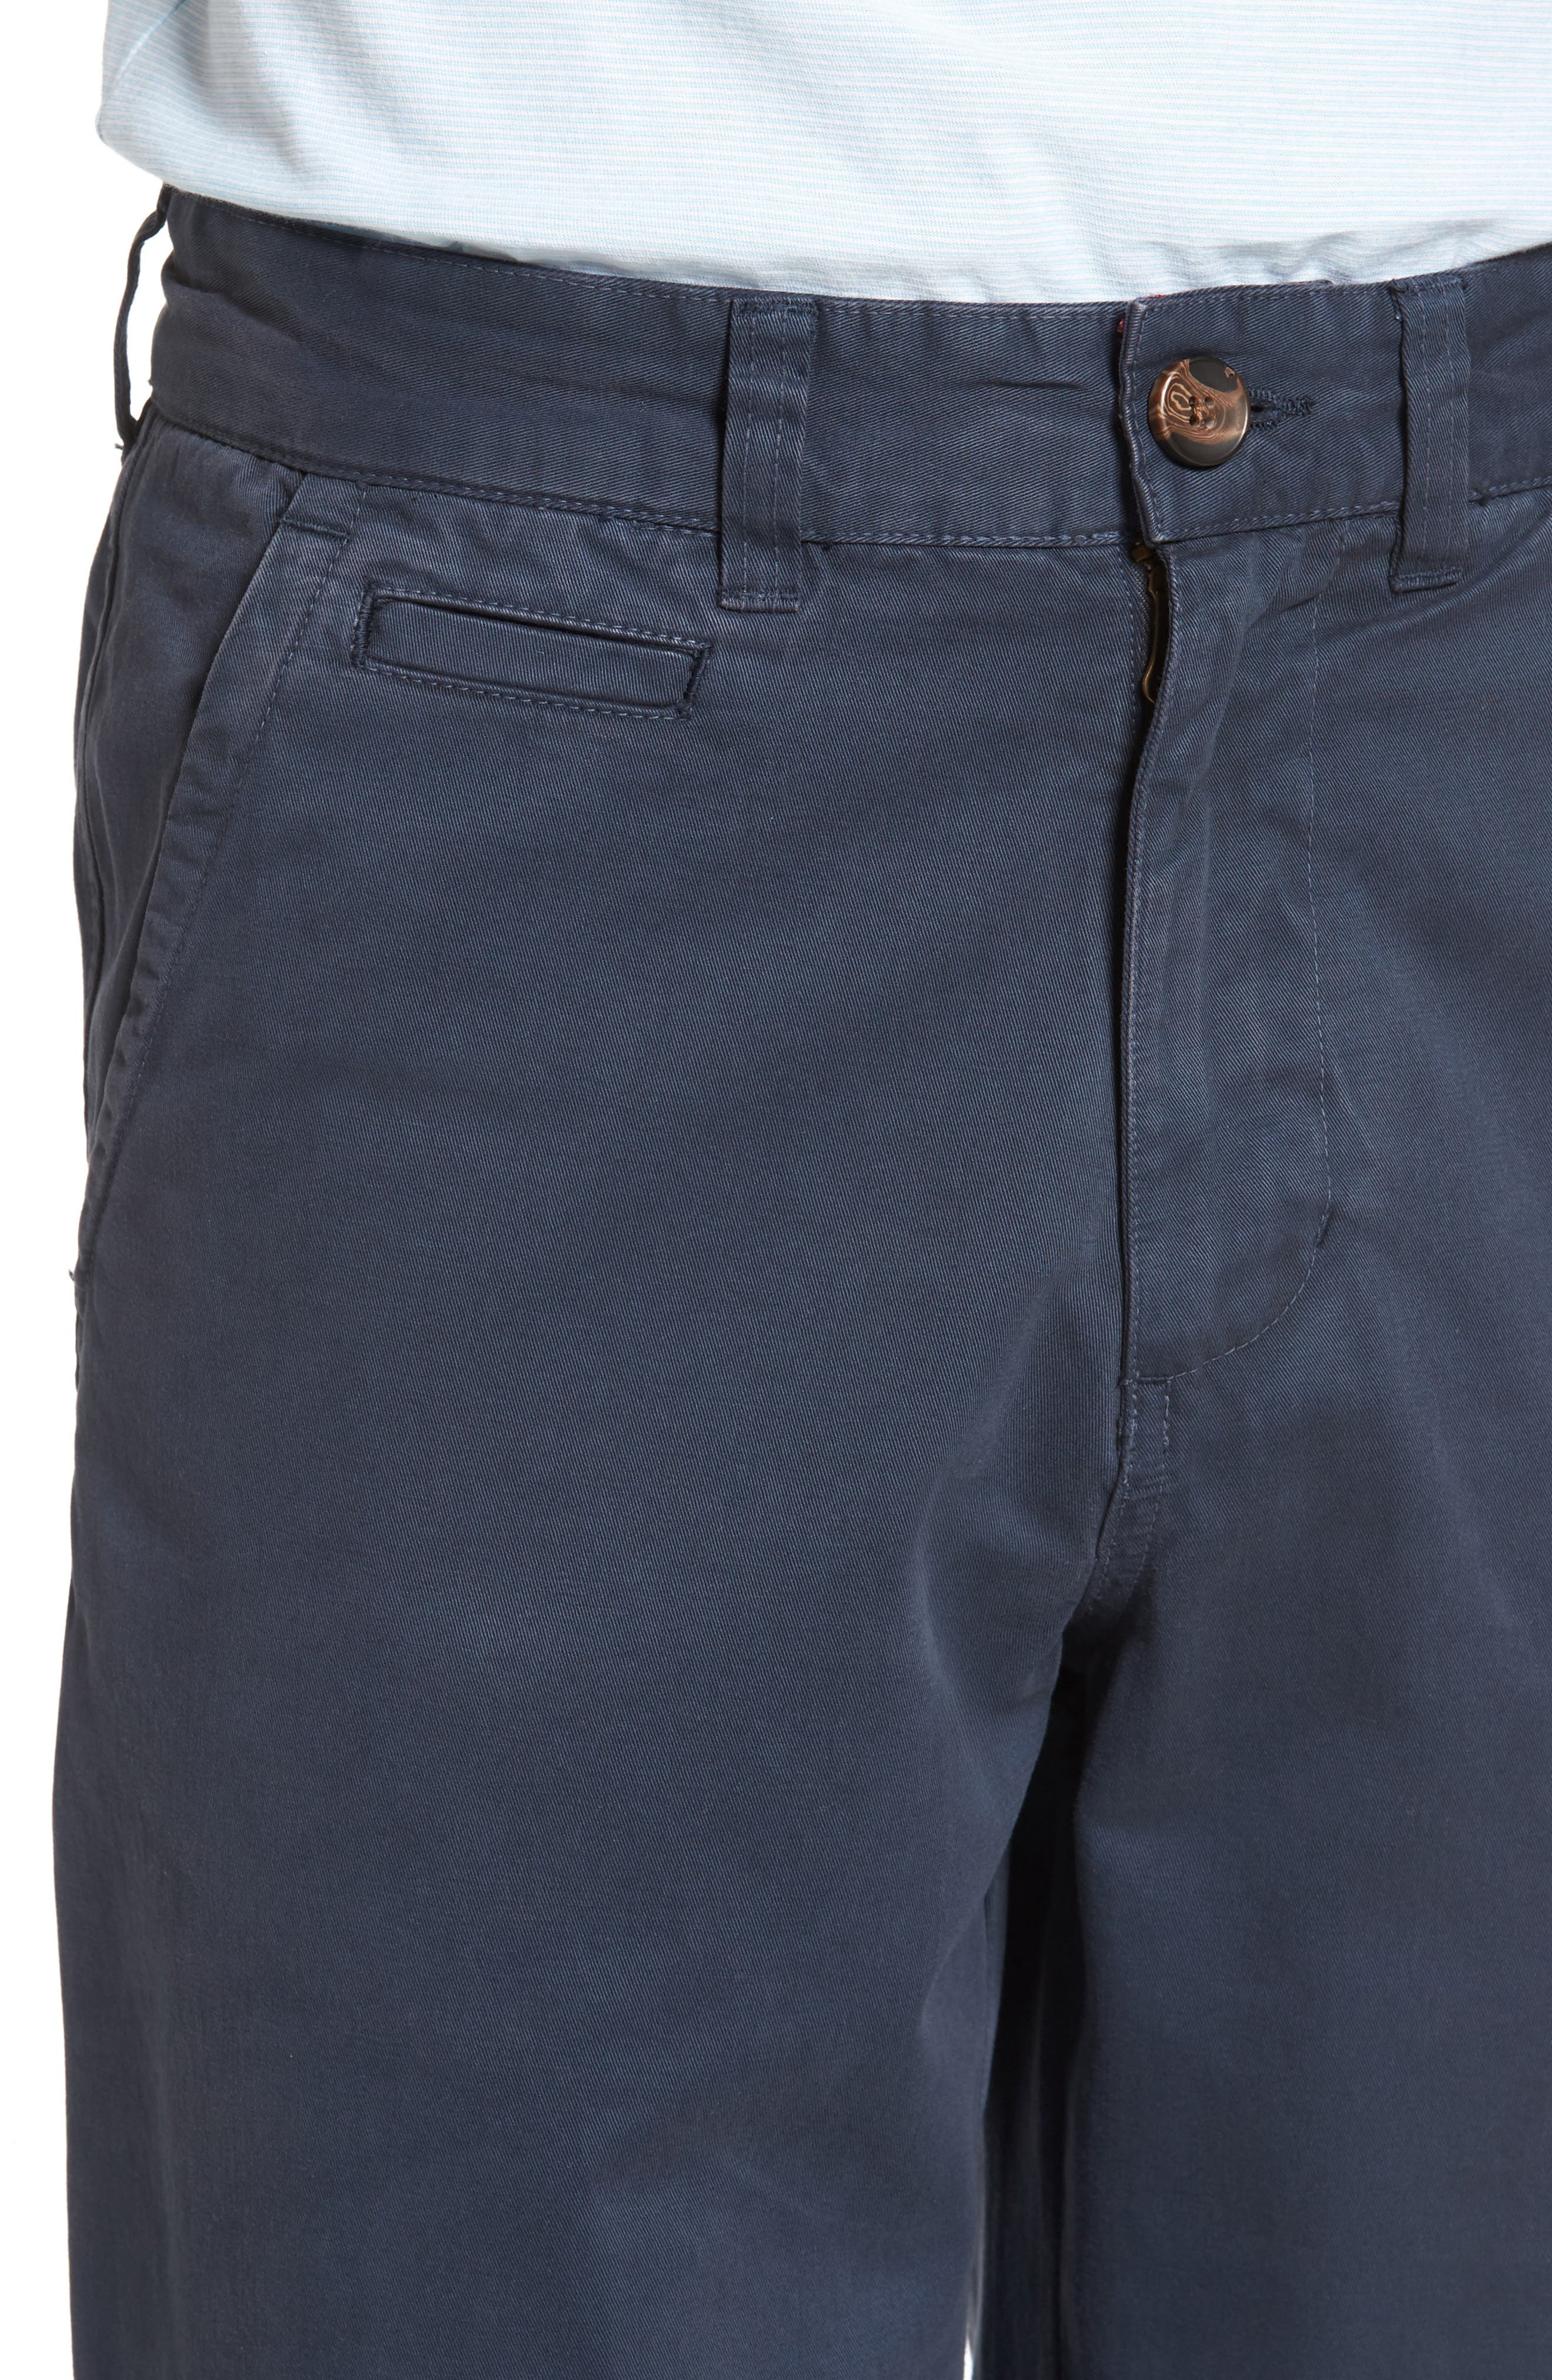 Classic Fit Military Chinos,                             Alternate thumbnail 4, color,                             NAVY